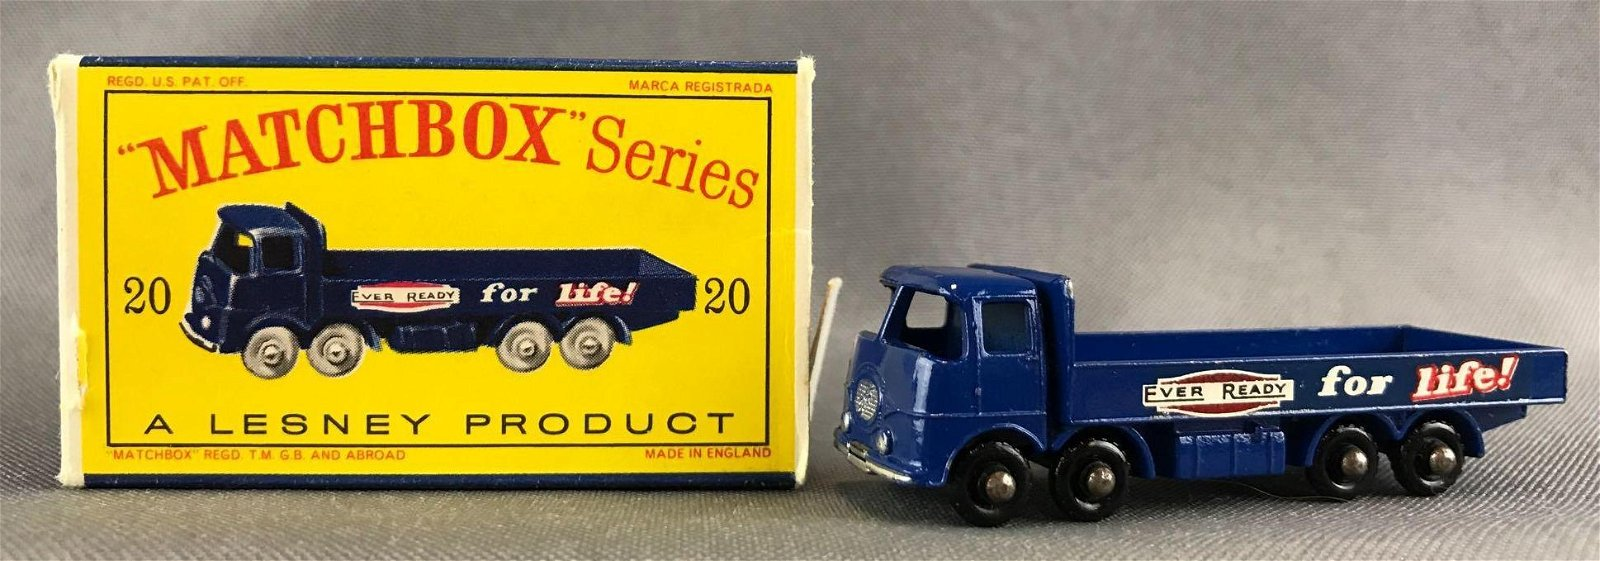 Matchbox No. 20 Transport Truck Die-Cast Vehicle with